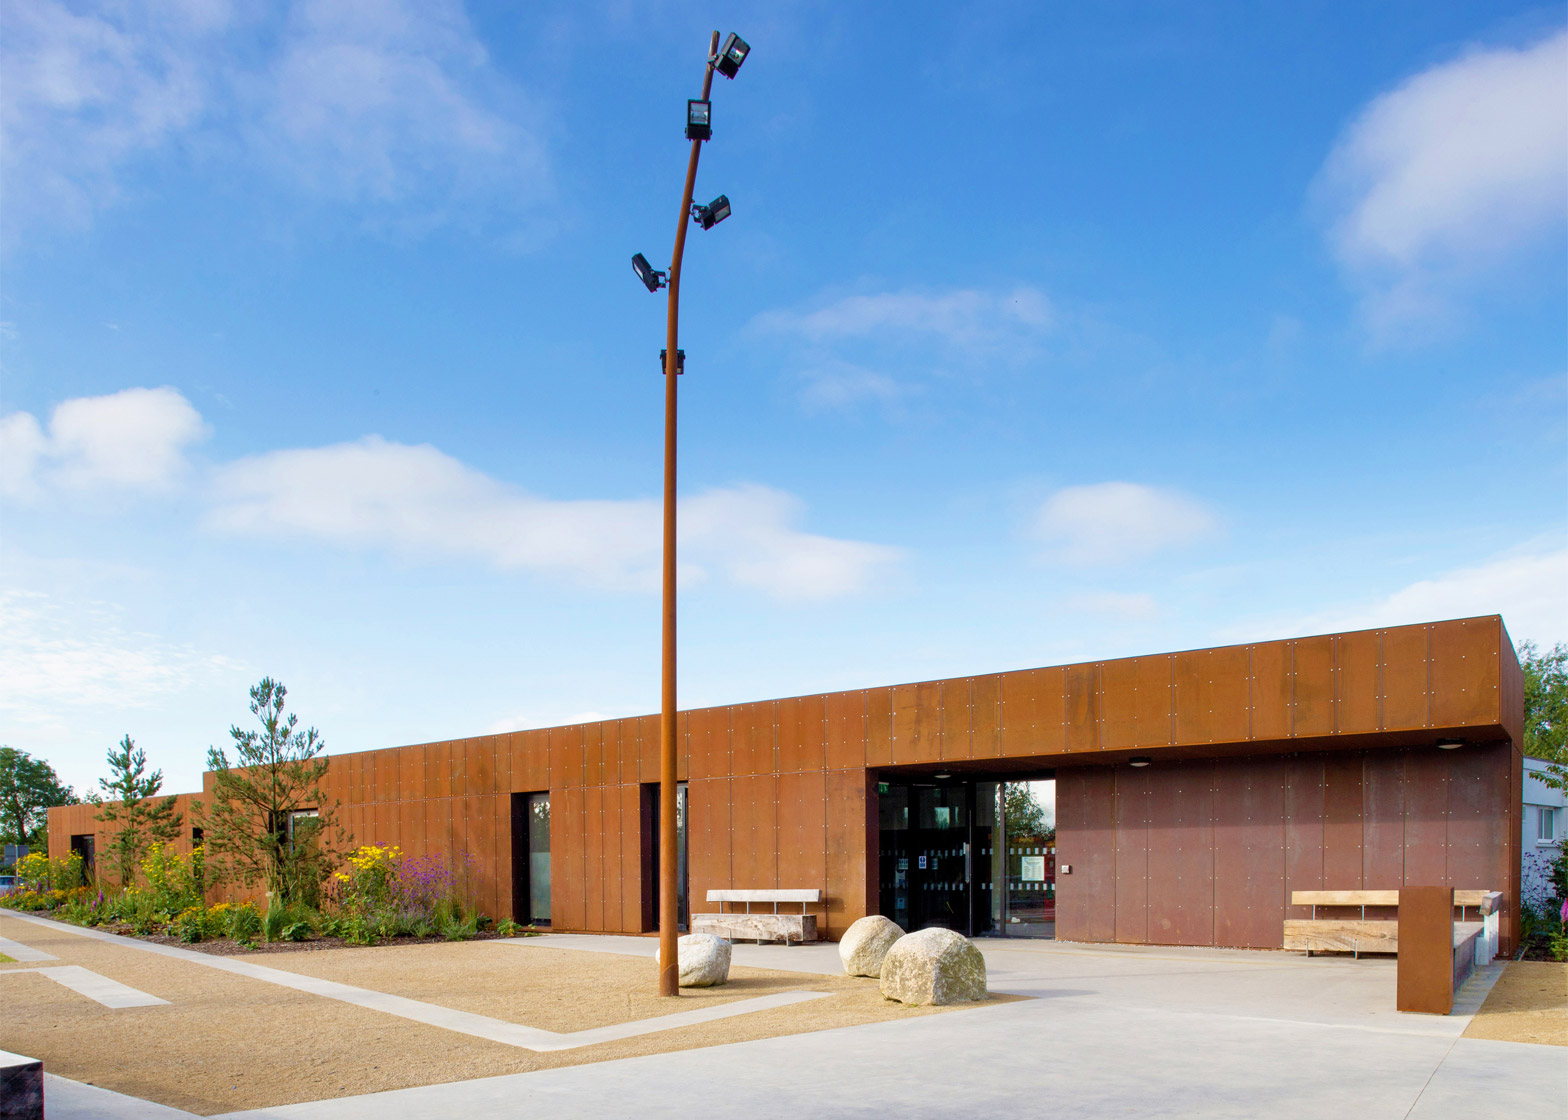 nenagh-leisure-centre-town-park-abk-architects-county-tipperary-ireland-swimming-pool_dezeen_1568_6